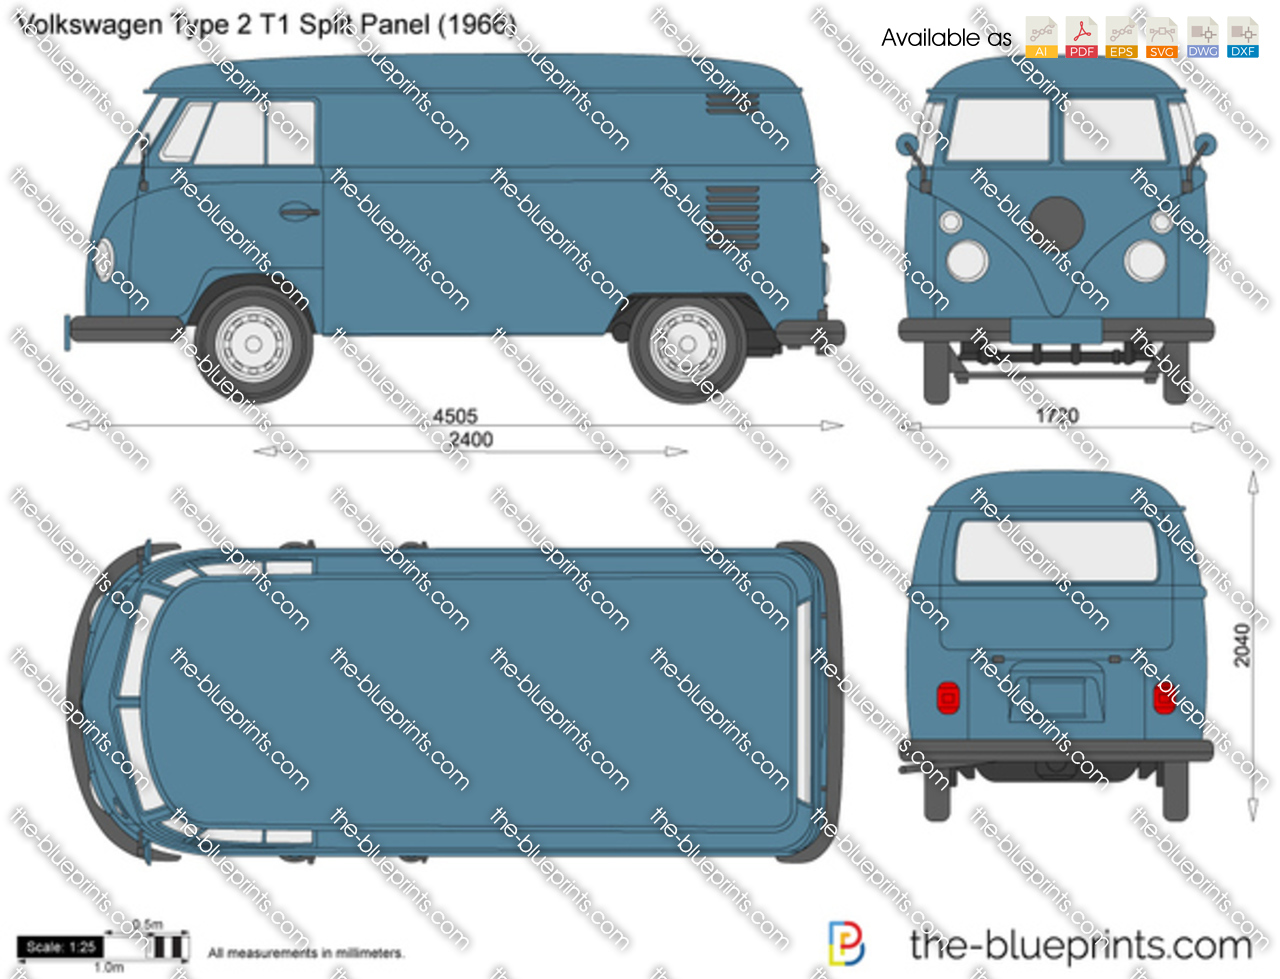 1961 Volkswagen Type 2 T1 Split Panel